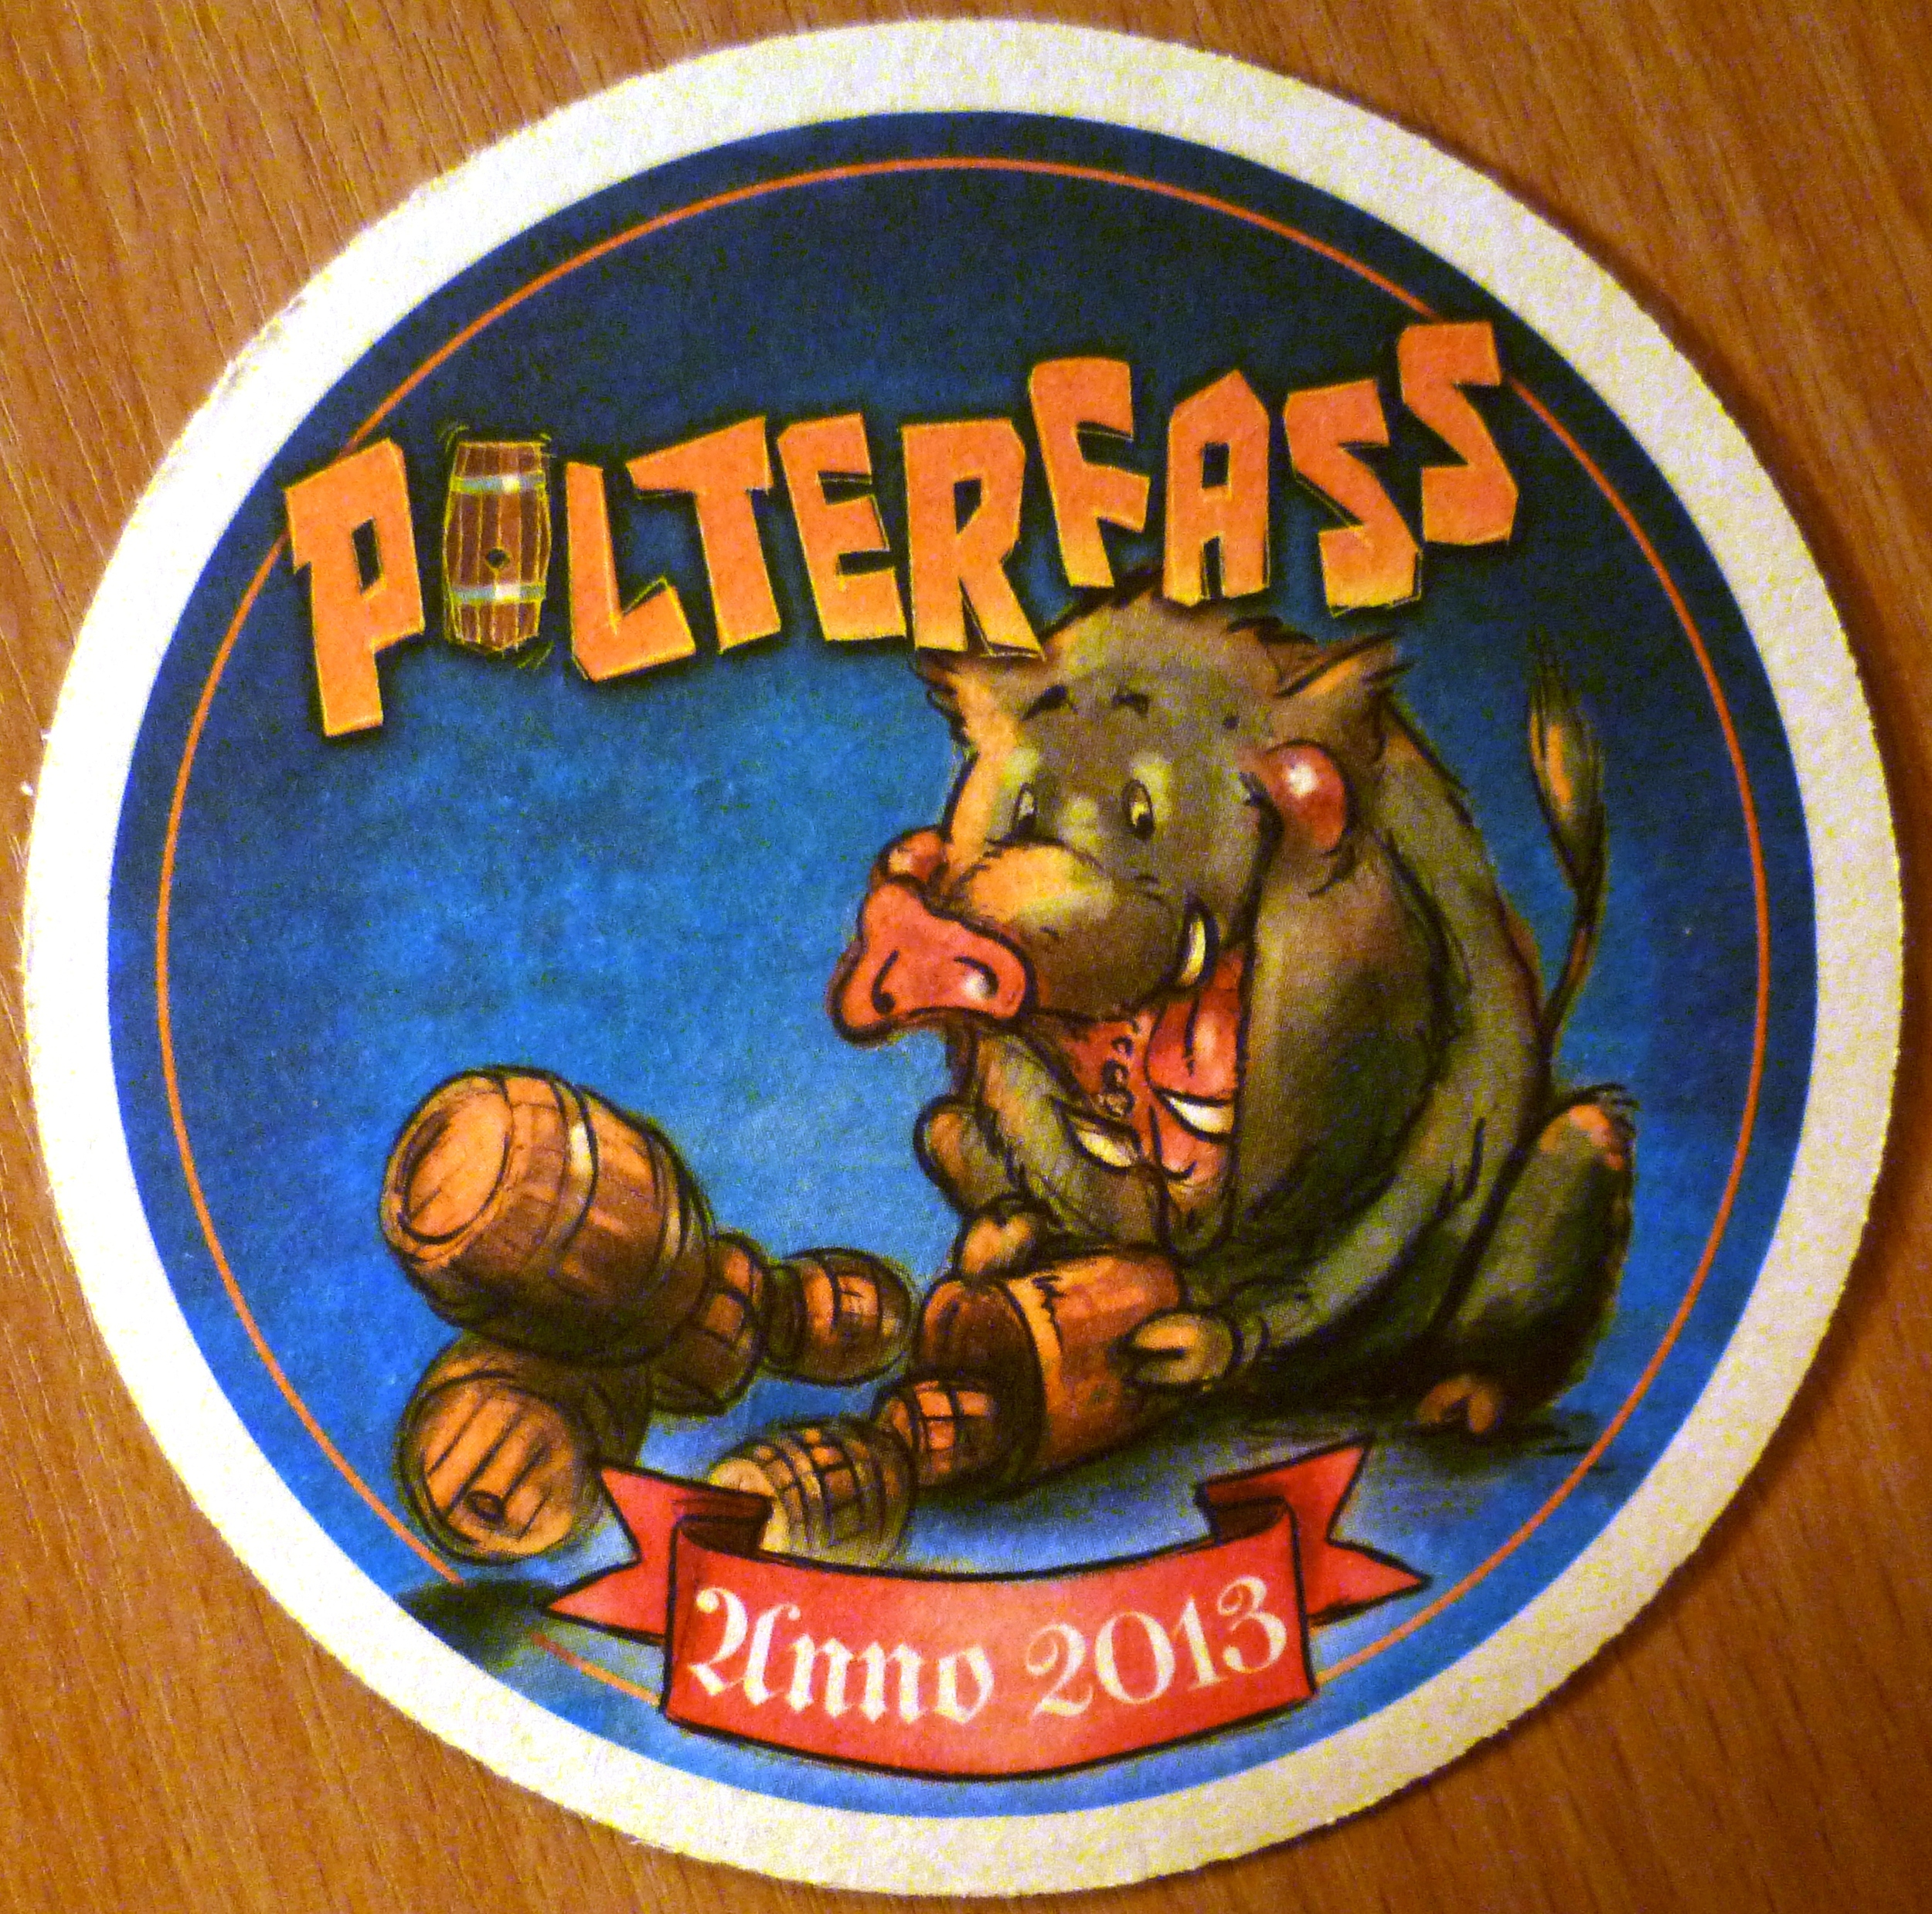 No Beer game is complete without Beer Mats